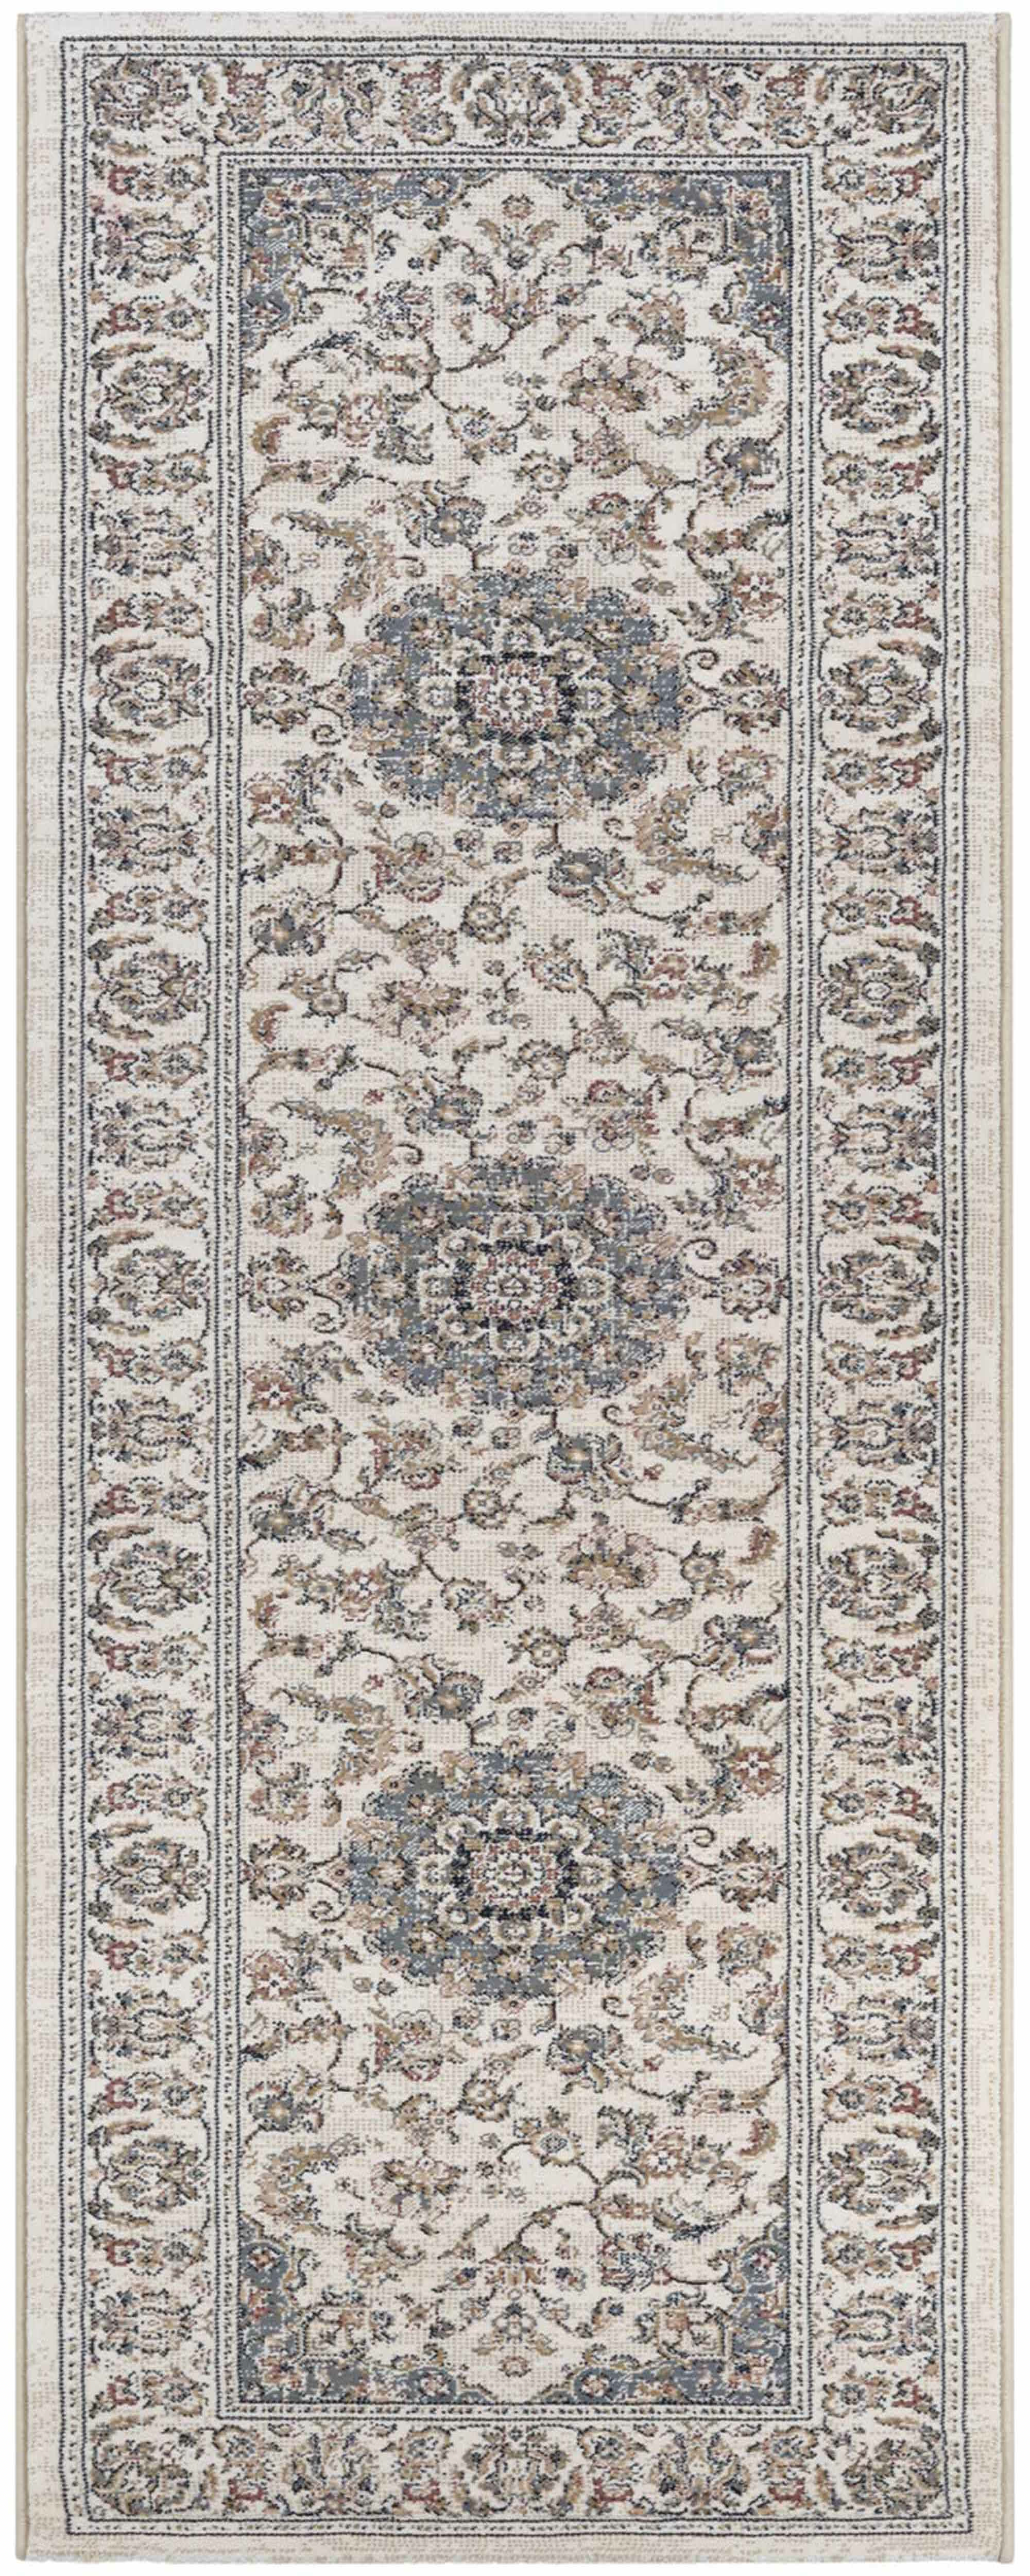 Grimaldo Medallion Antique Cream Area Rug Rug Size: Runner 2'3